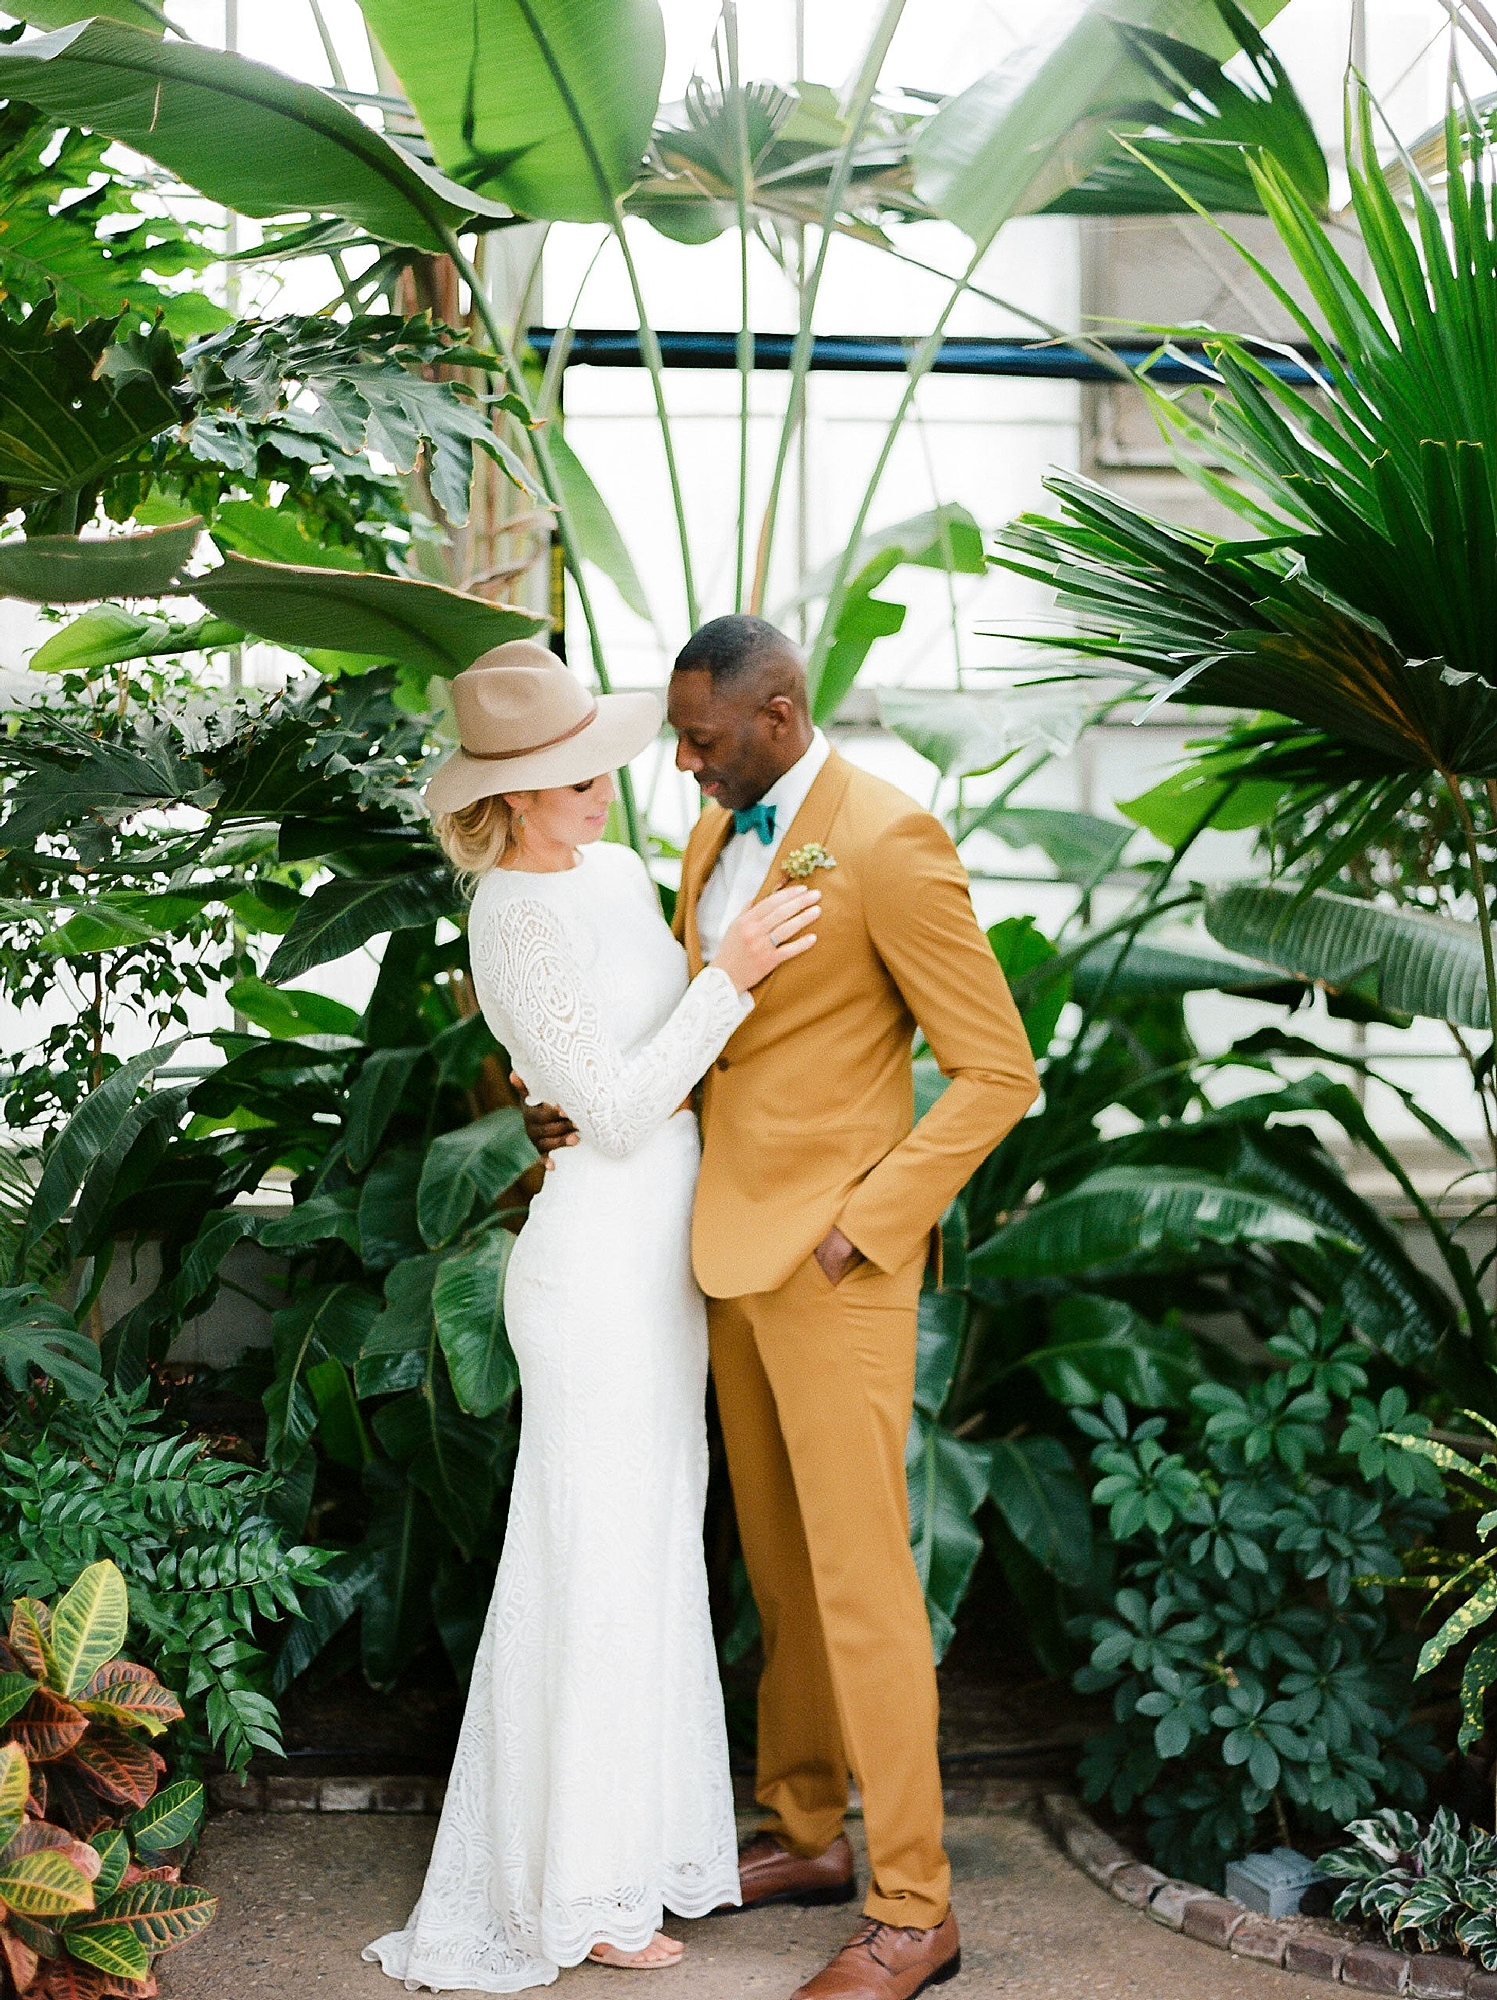 Colorful and Vibrant Wedding Photography at Fairmount Horticultural Center by Magdalena Studios 0045